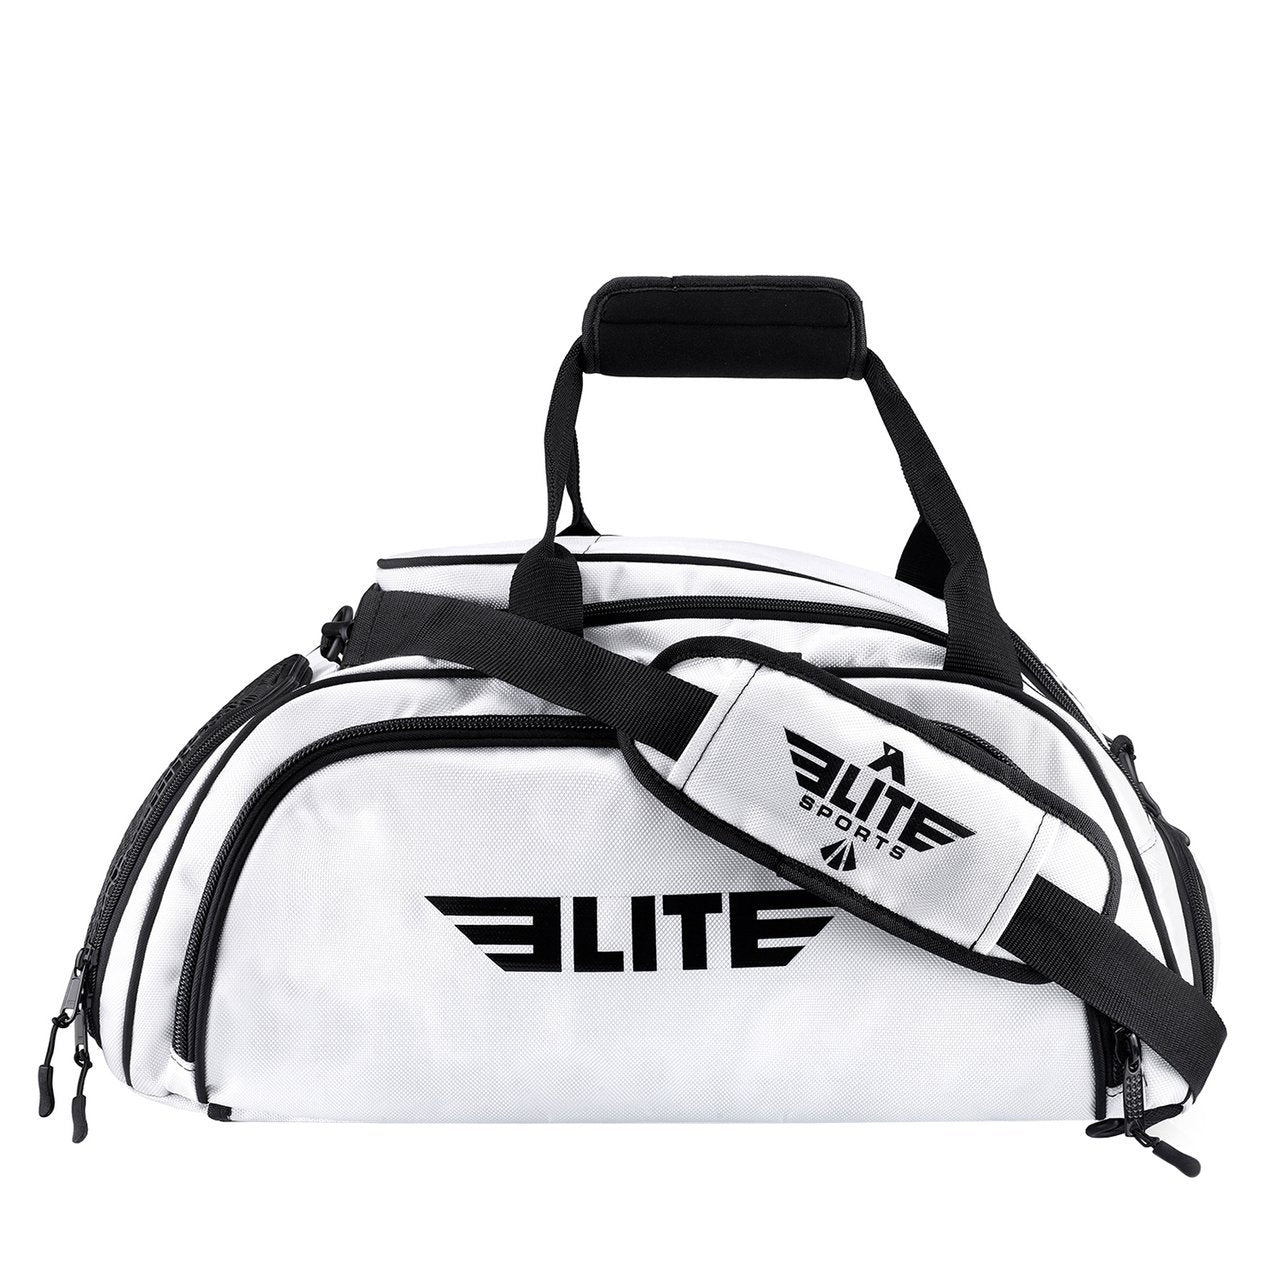 Load image into Gallery viewer, Elite Sports Warrior Series White Medium Duffel Taekwondo Gear Gym Bag & Backpack